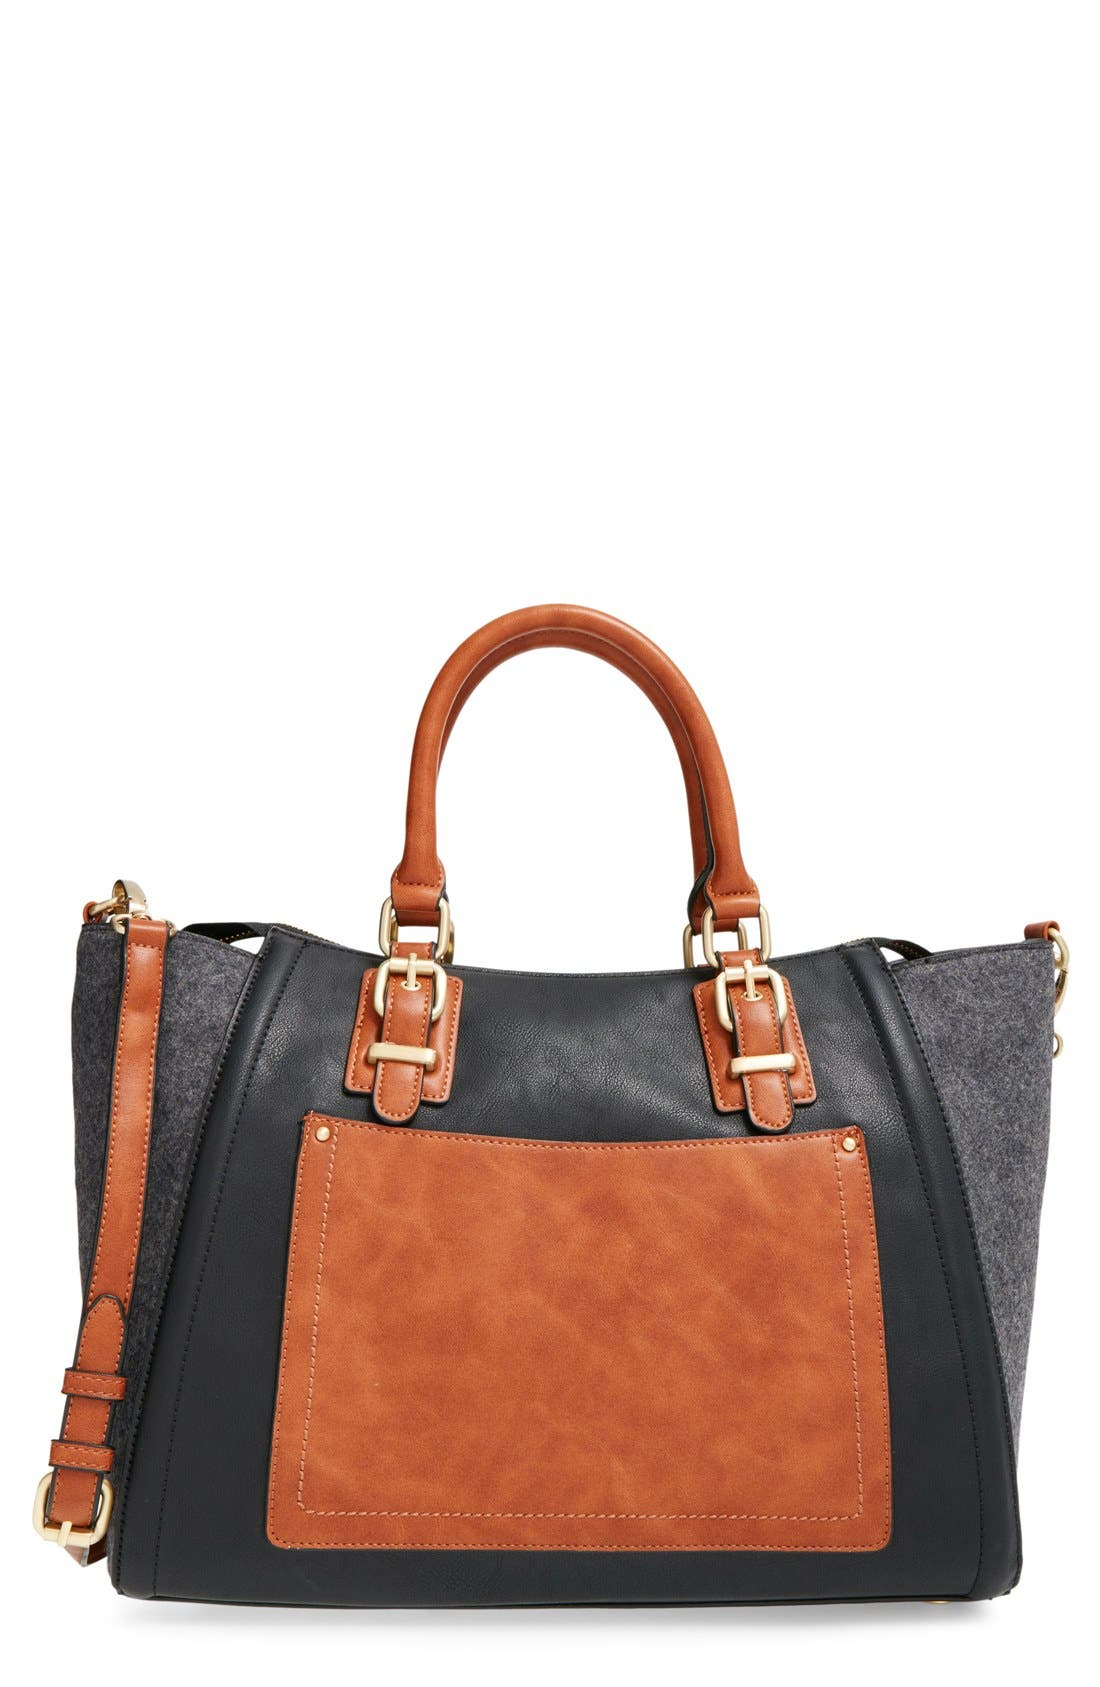 Alternate Image 1 Selected - Sole Society 'Jensen' Mixed Media Tote